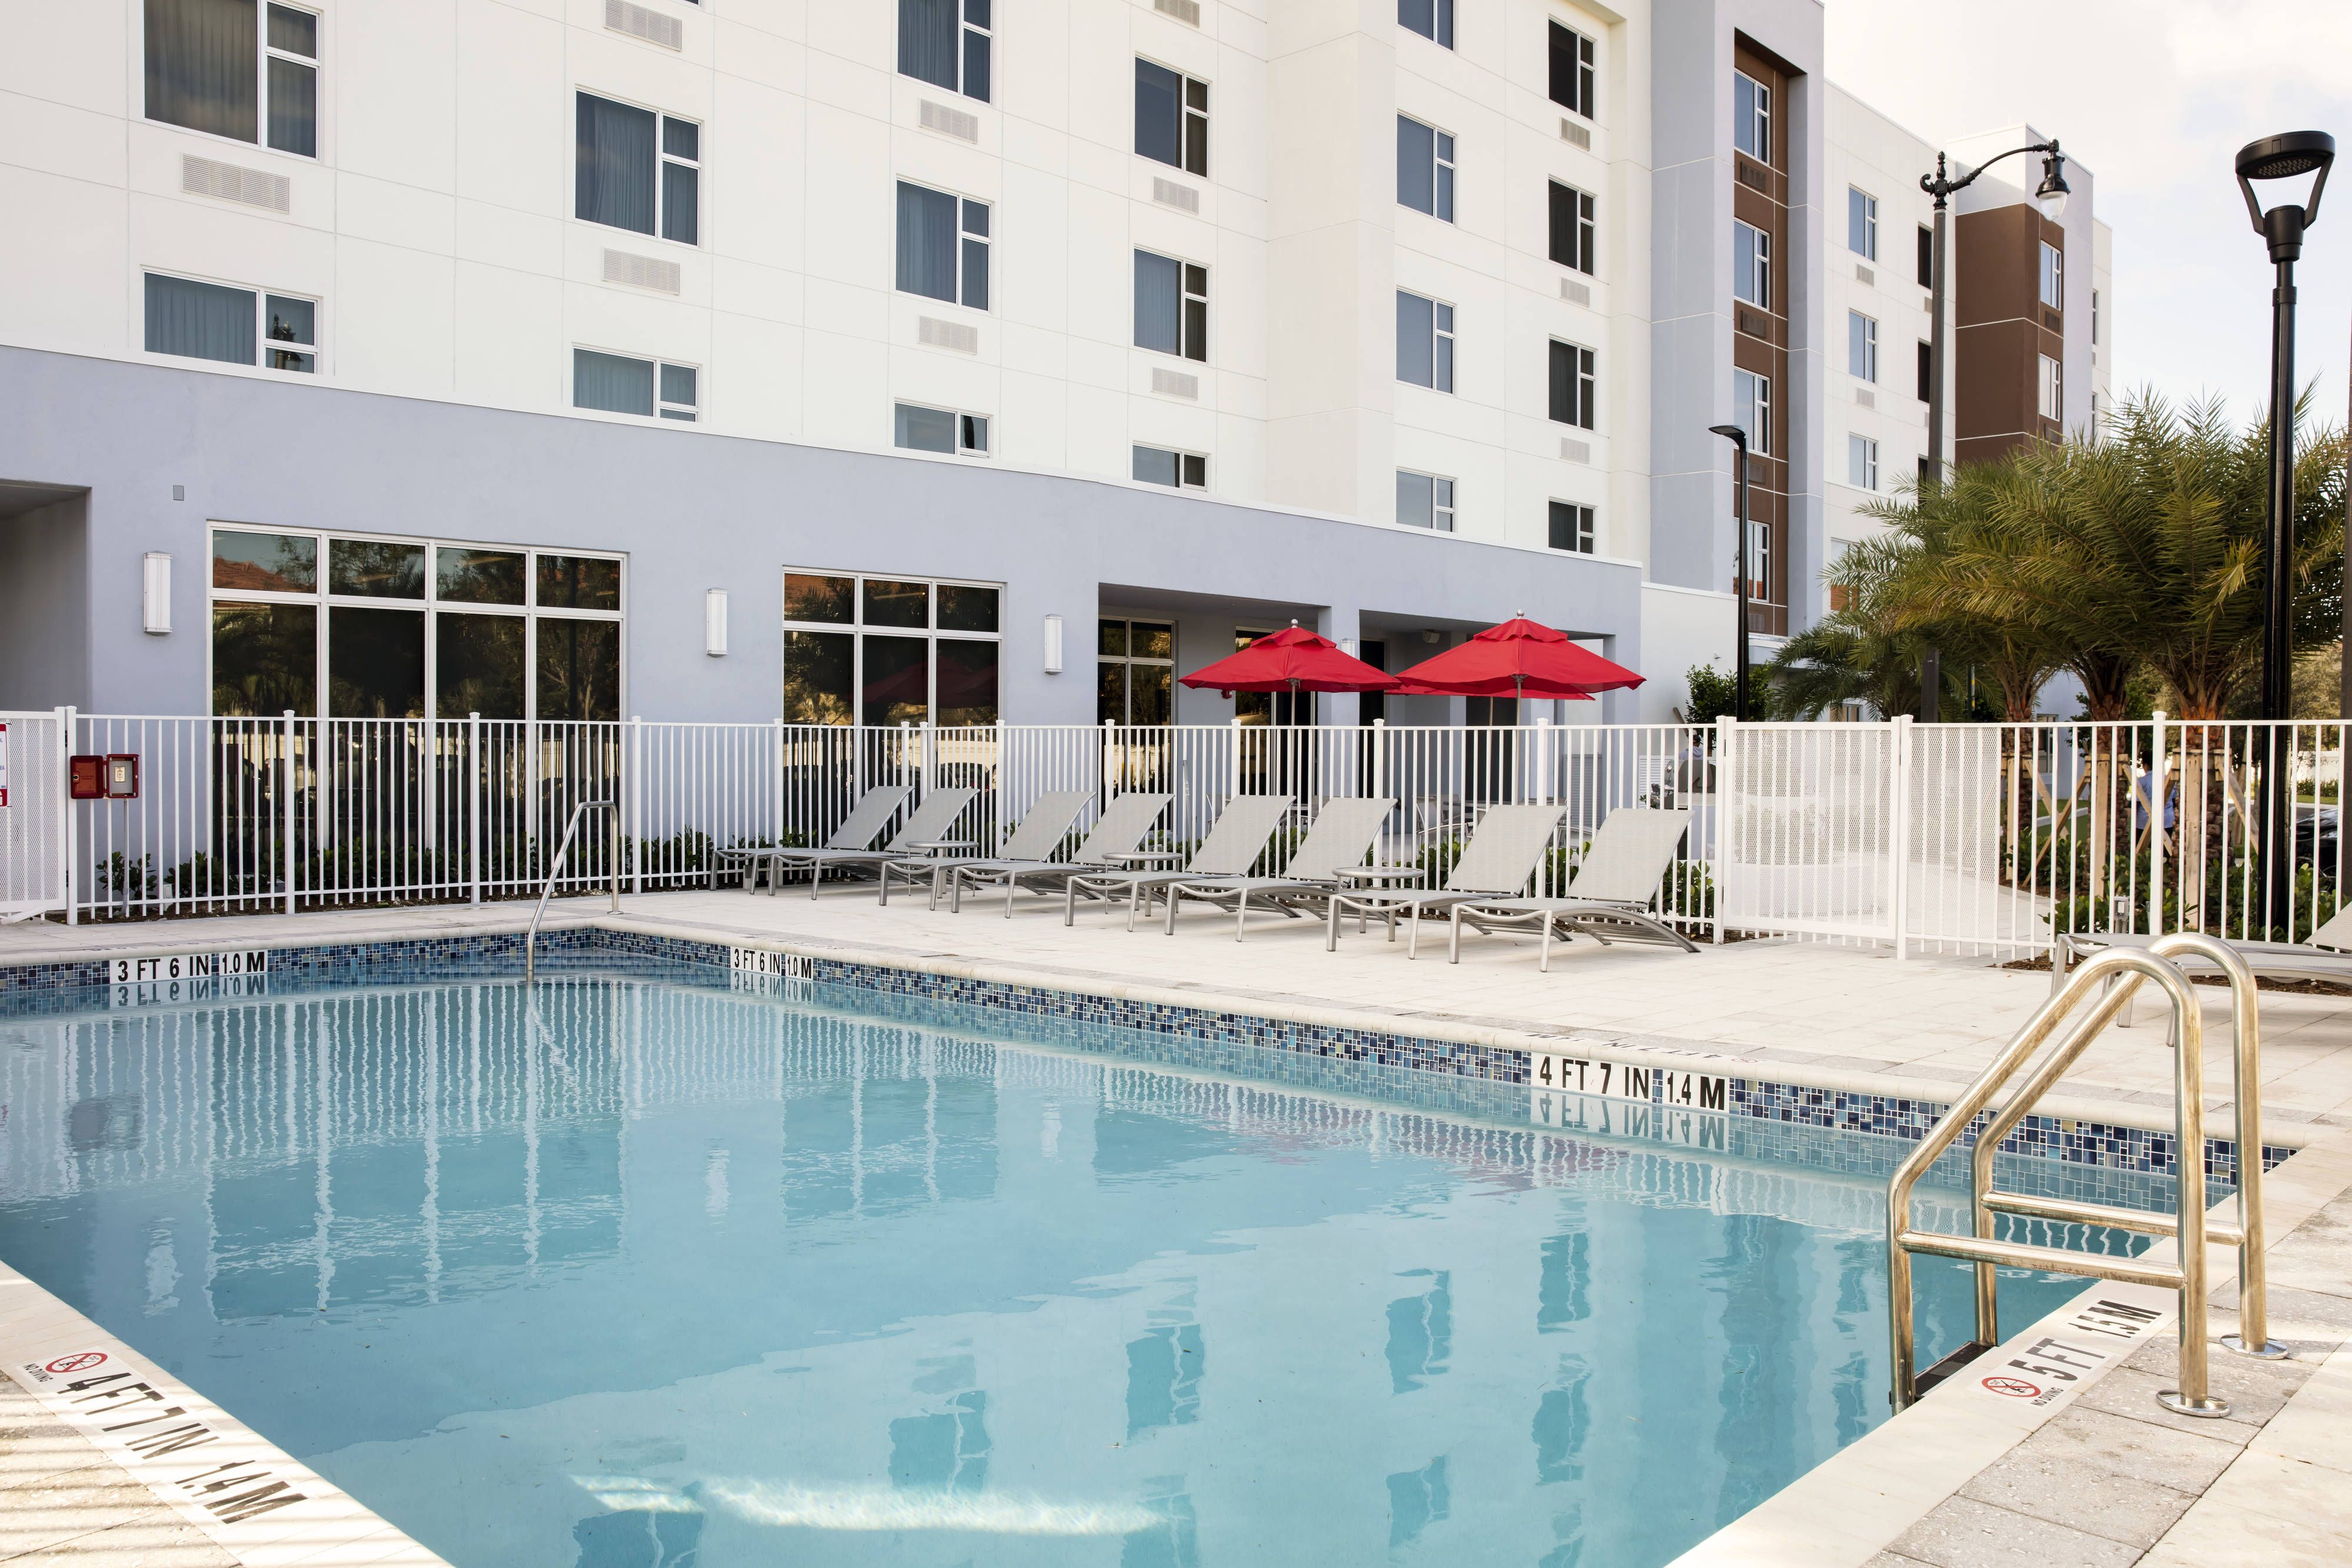 Towneplace Suites Miami Homestead Outdoor Pool Travel Holiday Travel Outdoor Pool Suites Homesteading